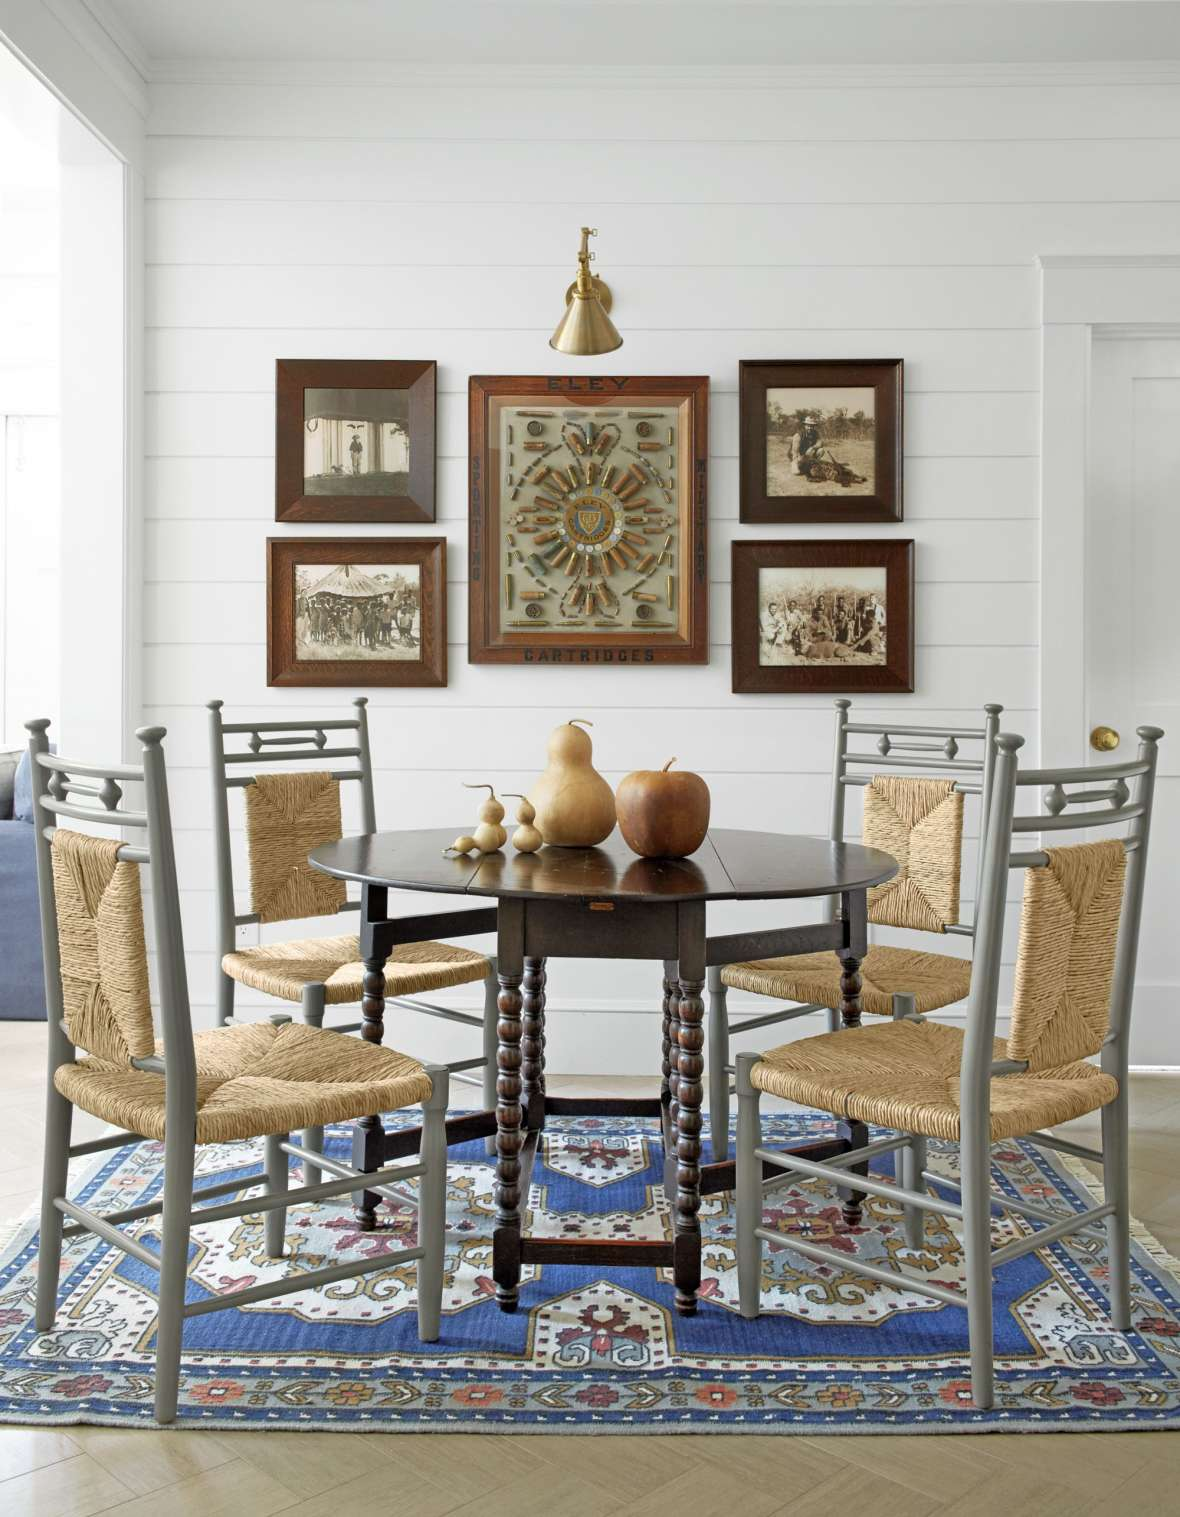 dining room accent pieces meilleur scpi easy fall decorating ideas autumn decor tips try for table sectional couch yellow peva tablecloth small fold coffee concrete and wood